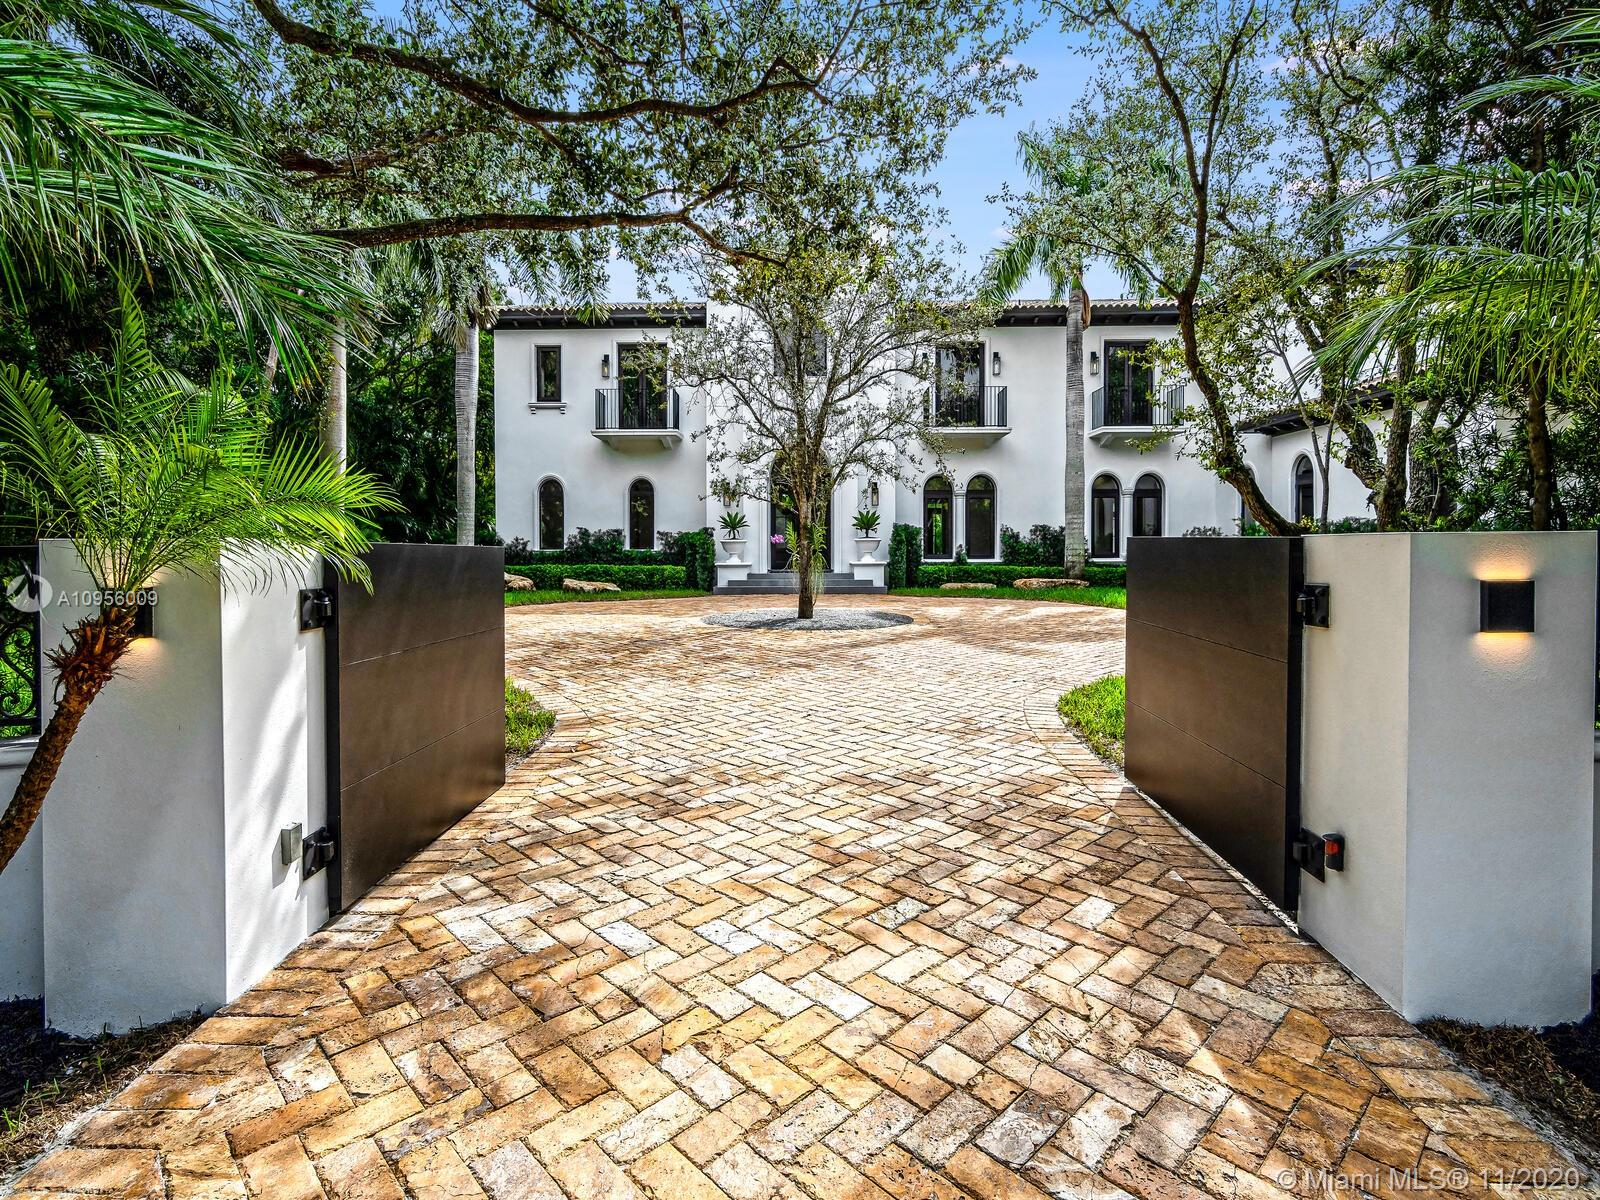 Recently renovated, this timeless estate is the epitome of Miami lifestyle. Enter through the dramatic foyer and fall in love with the curved staircase and rustic wood beamed ceiling. Modern & traditional details blend seamlessly to enhance the visual impact throughout. Architecturally-rich home has 9,848 total sq/ft with 7BD/7.5BA on a private builder's acre with majestic oaks. The kitchen is an epicurean dream with Wolf/Sub Zero appliances & floor to ceiling stained oak cabinets. Open family room w/built-in custom bar. Grand 1st floor master suite with stunning bathroom. Smart home w/Control 4 automated system. Built 15.2' above sea level with impact resistant windows/doors to insure you'll be prepared for any climate! Home is ideal for entertaining....offering style, comfort & luxury.